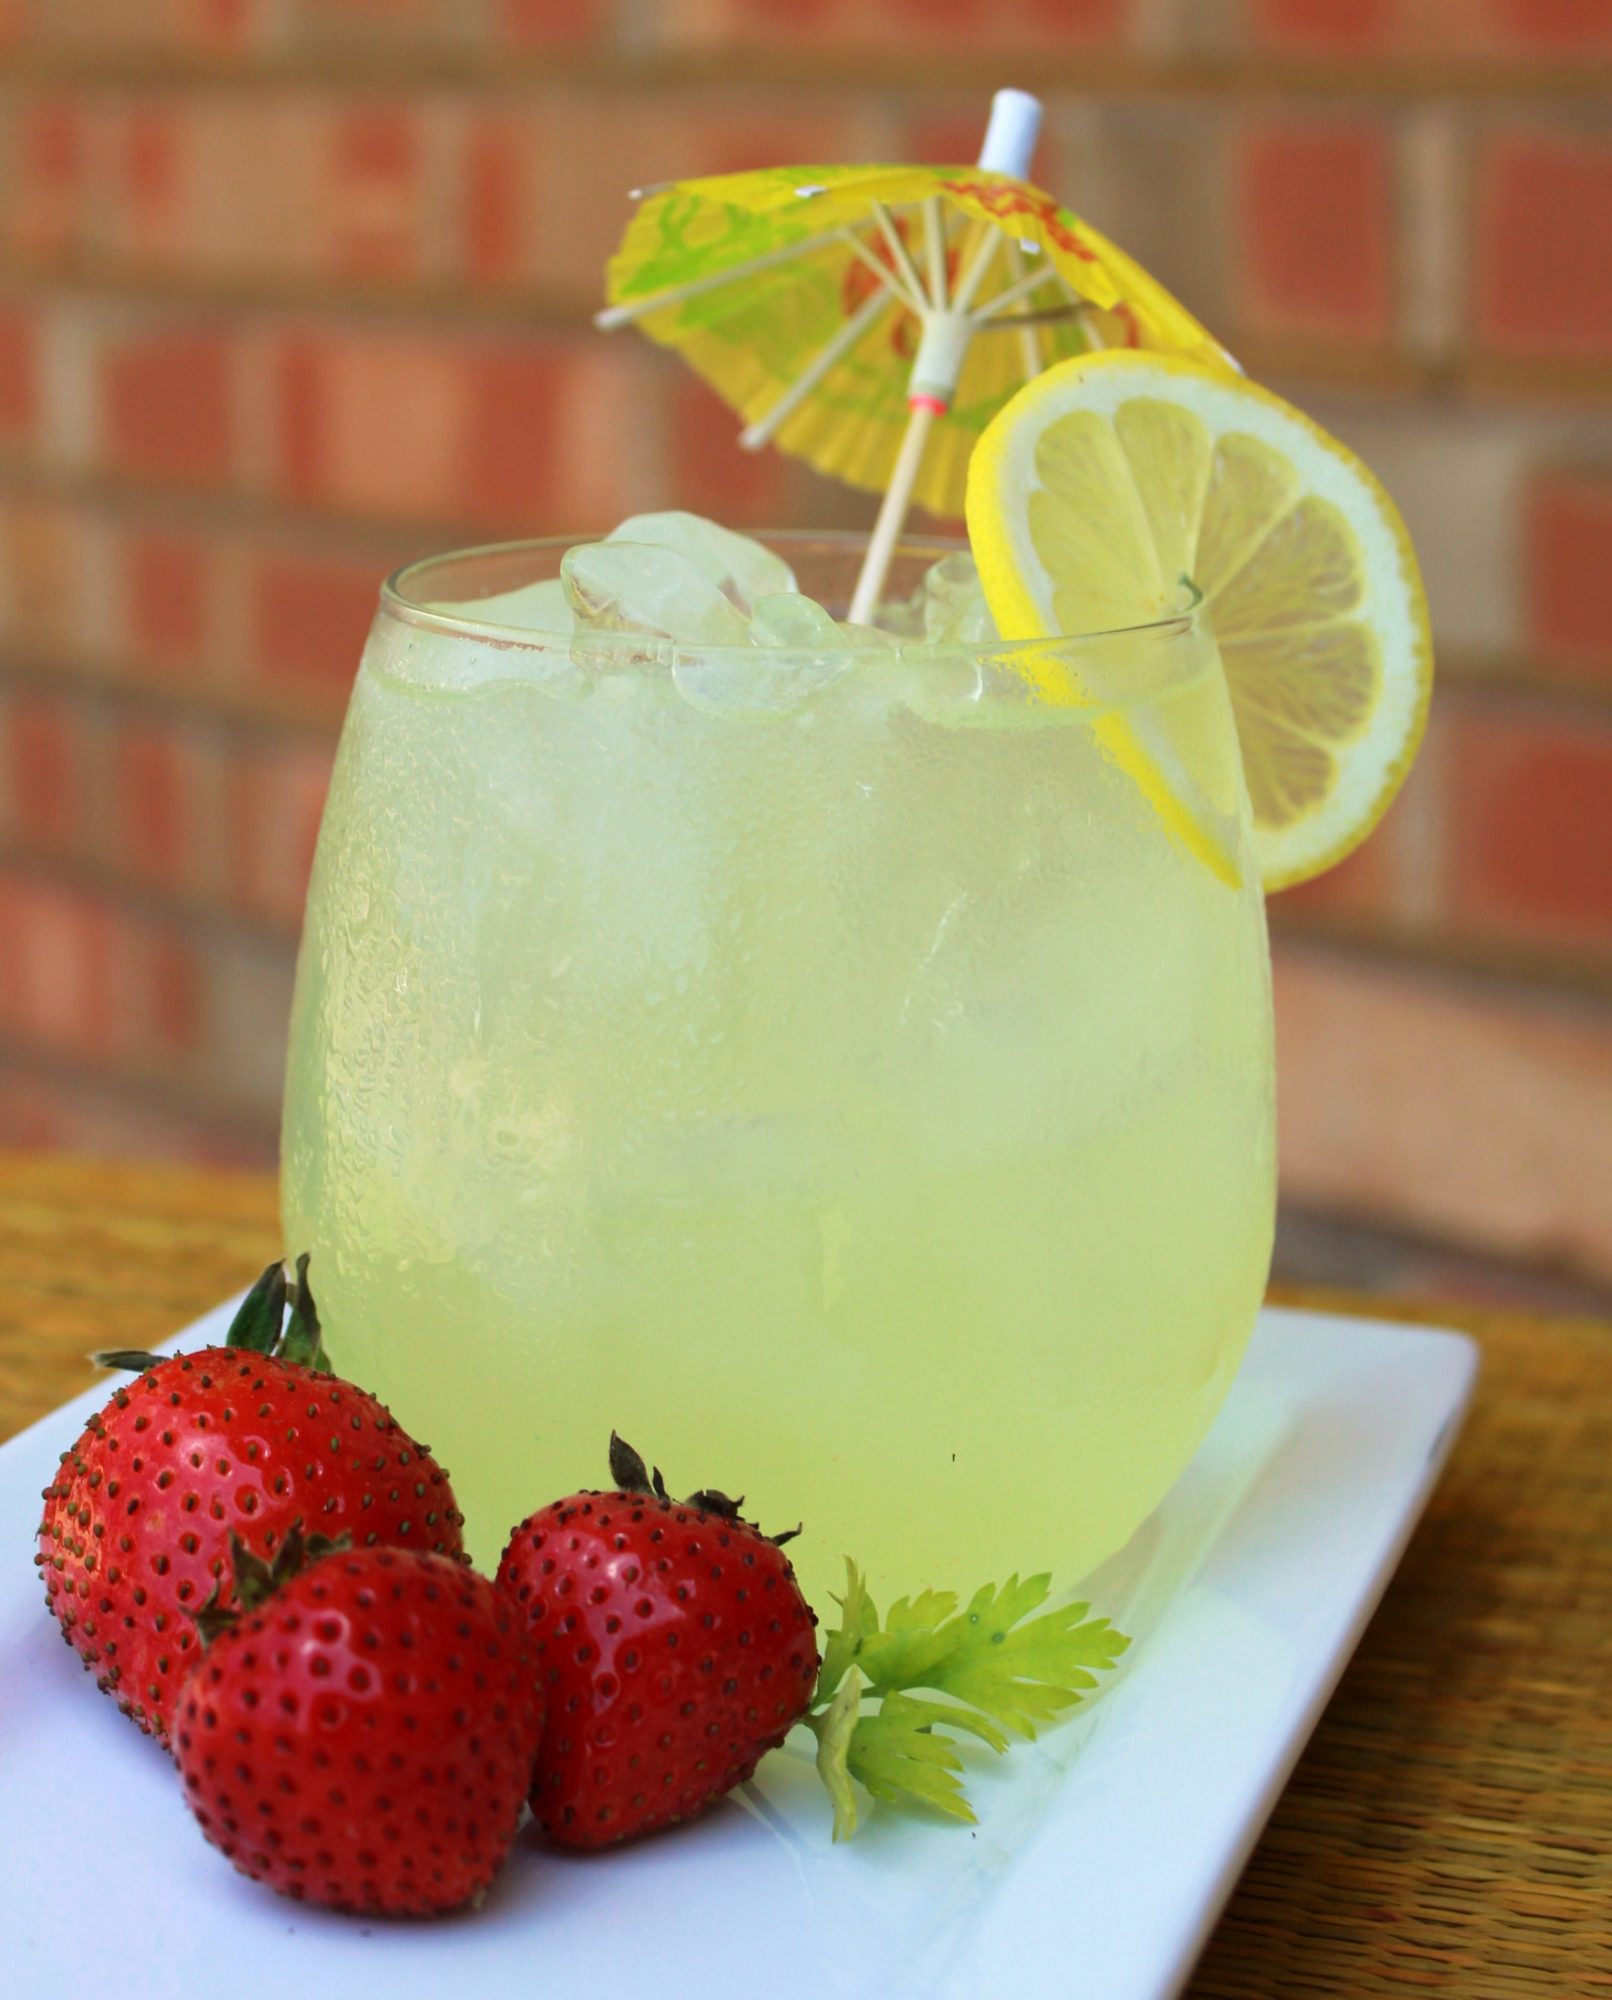 A glass of iced lemonade garnished with a yellow paper parasol and a lemon wheel, served on a white platter with three fresh strawberries